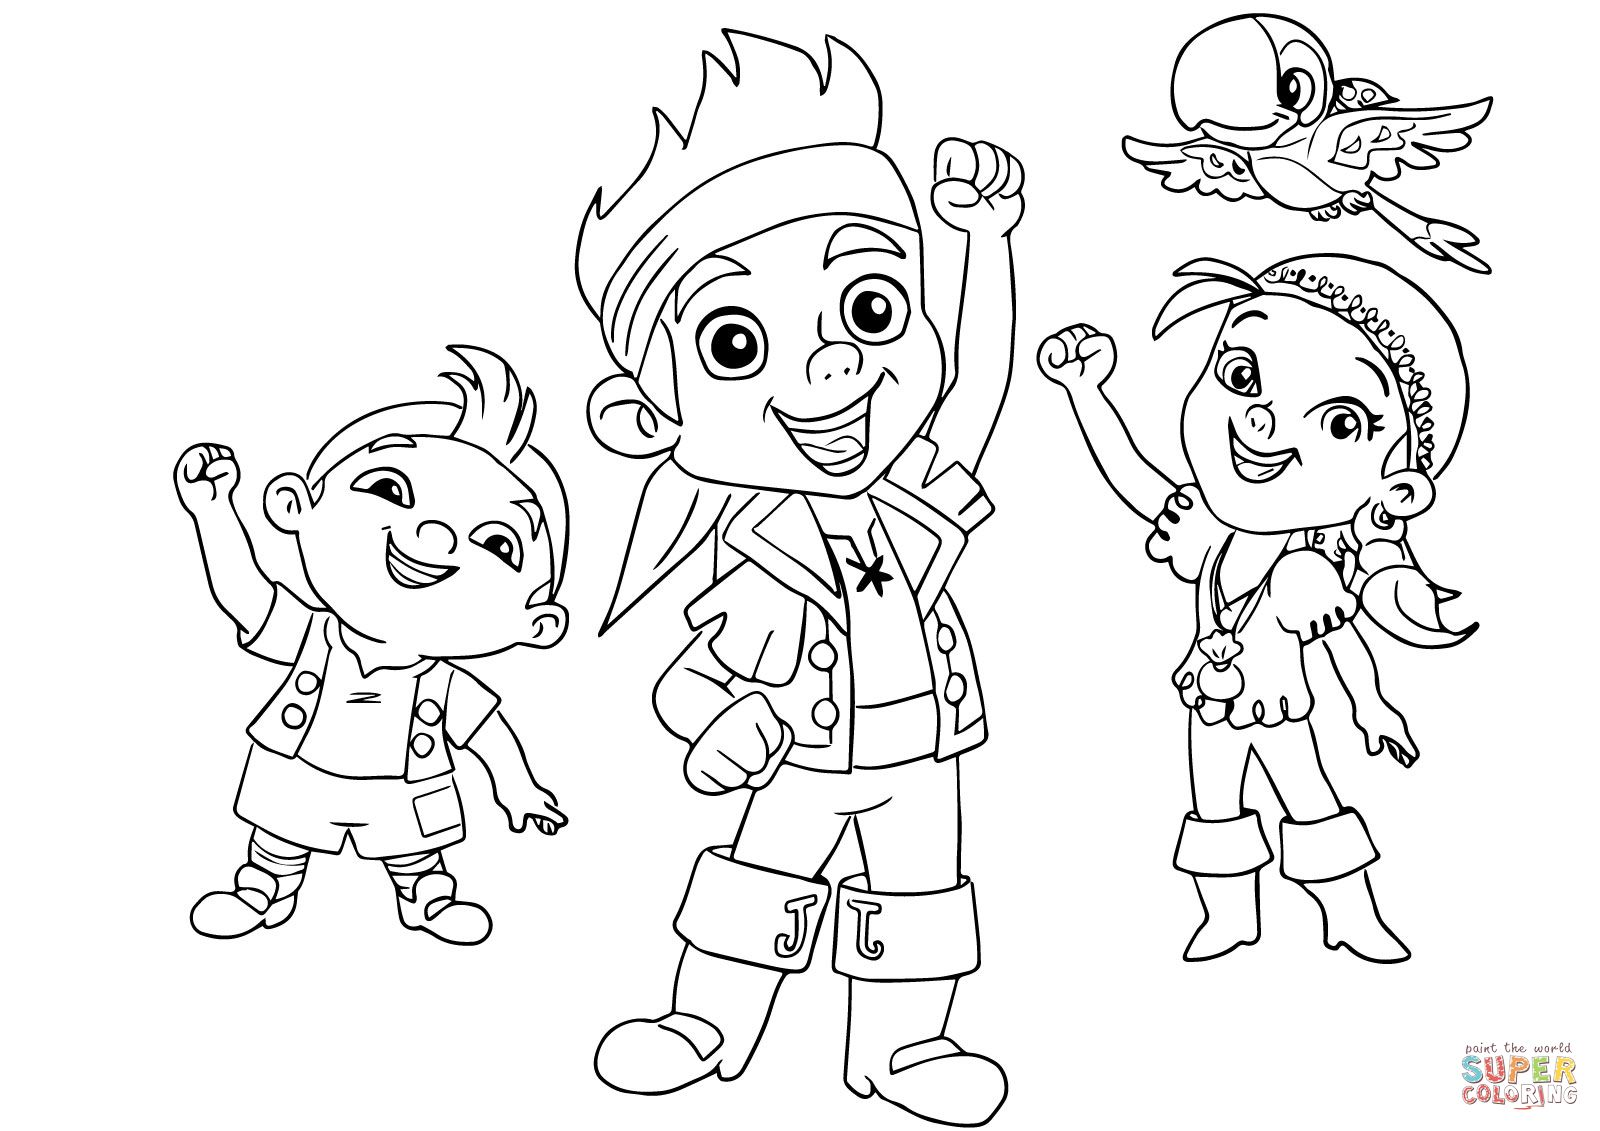 Jack and The Neverland Pirates coloring pages | Leo\'s coloring book ...